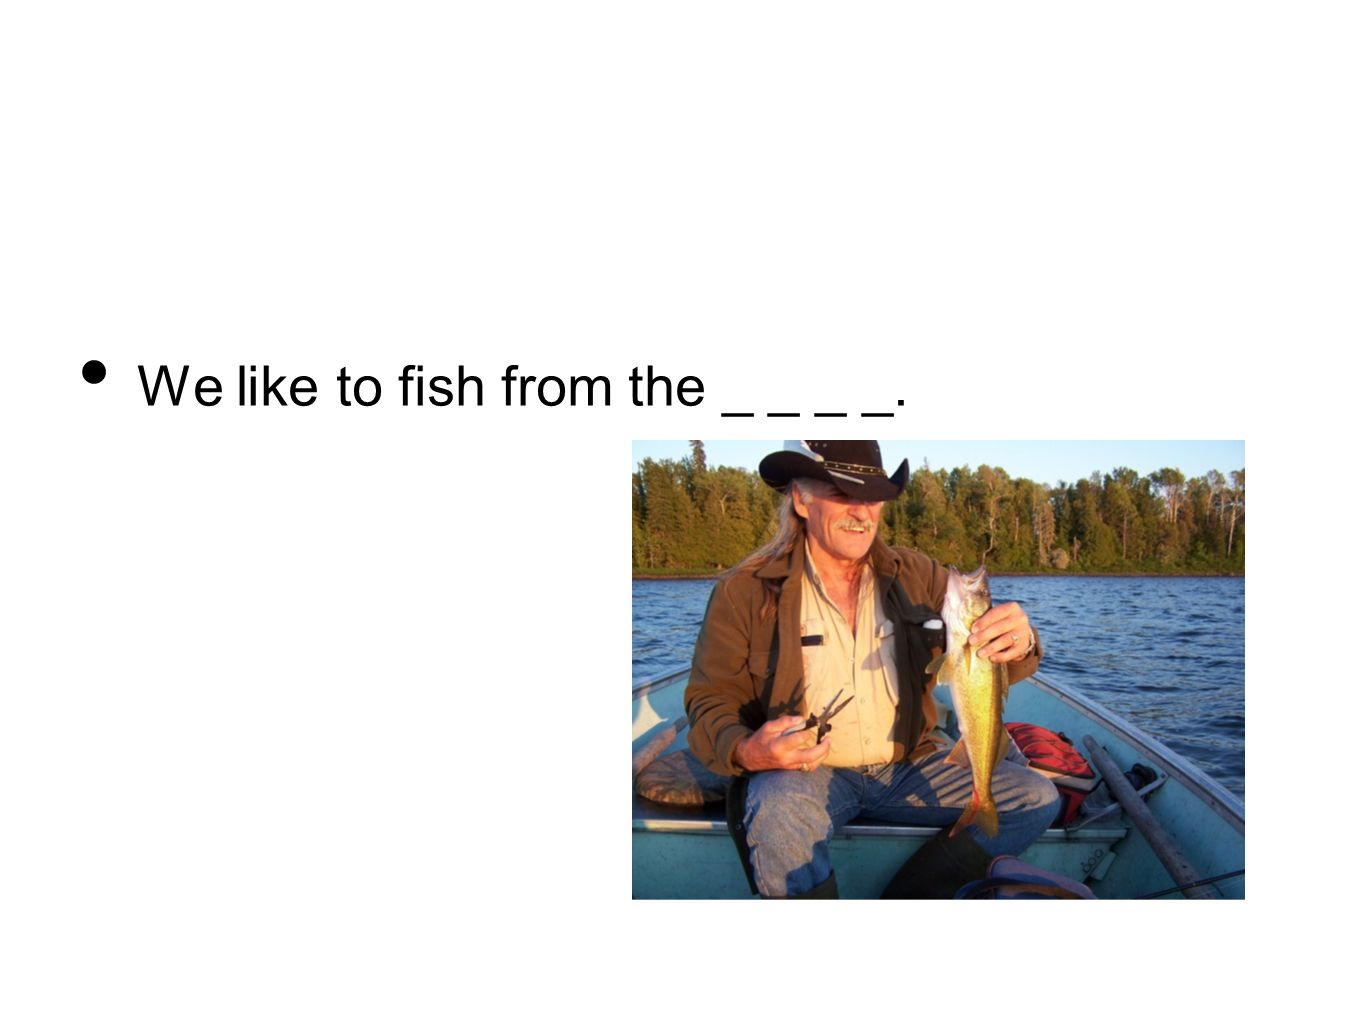 We like to fish from the _ _ _ _.